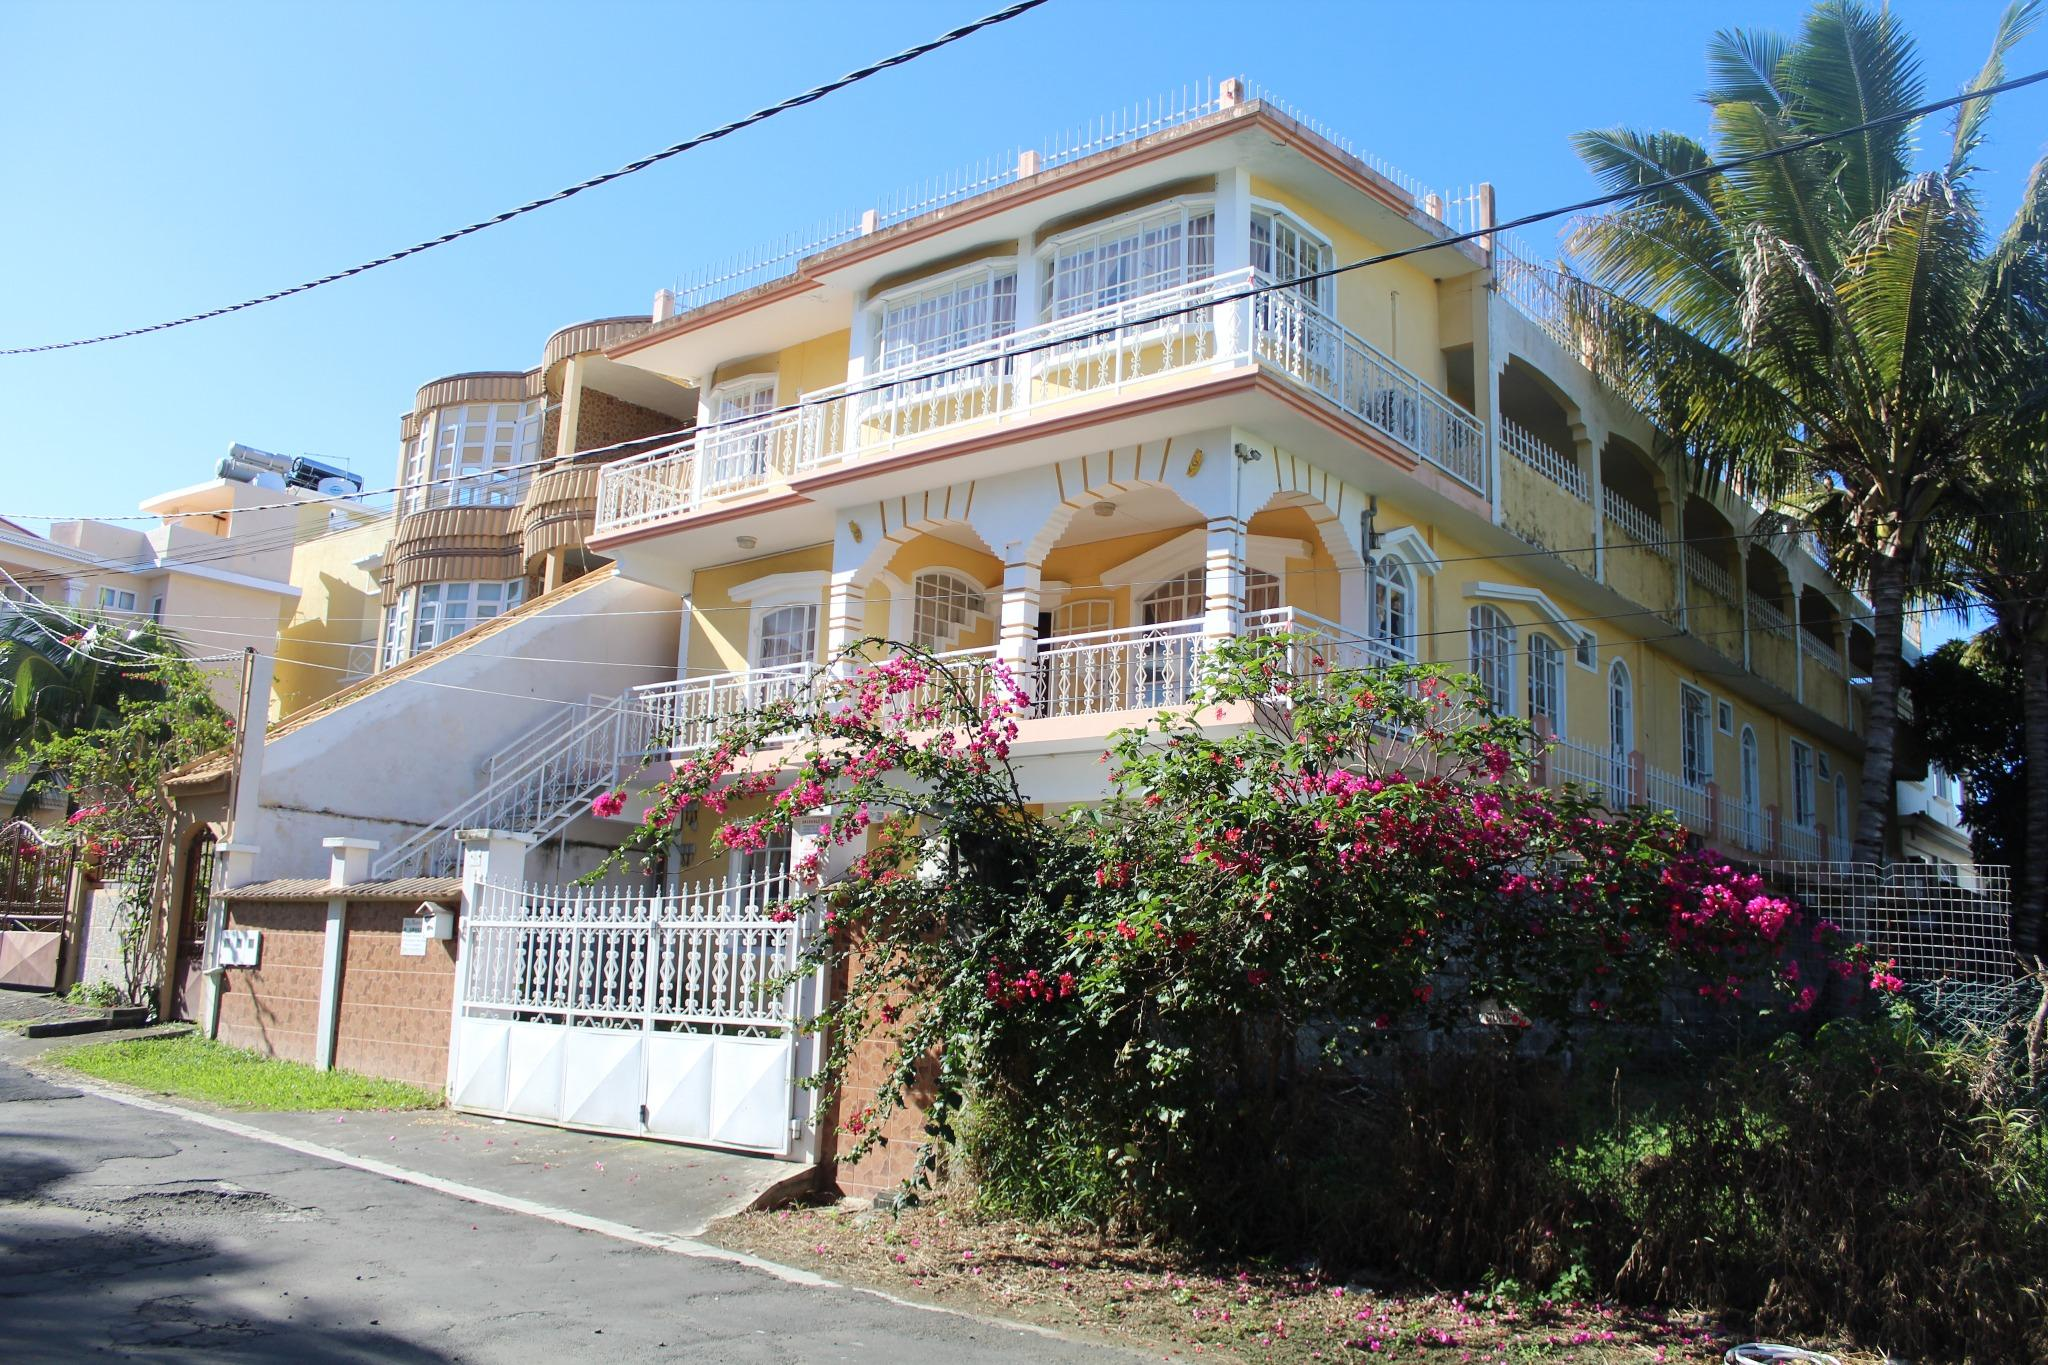 For sale – Residential complex to renovate of 2 apartments and 7 studios in Blue Bay, 5 minutes walking distance from the beach.